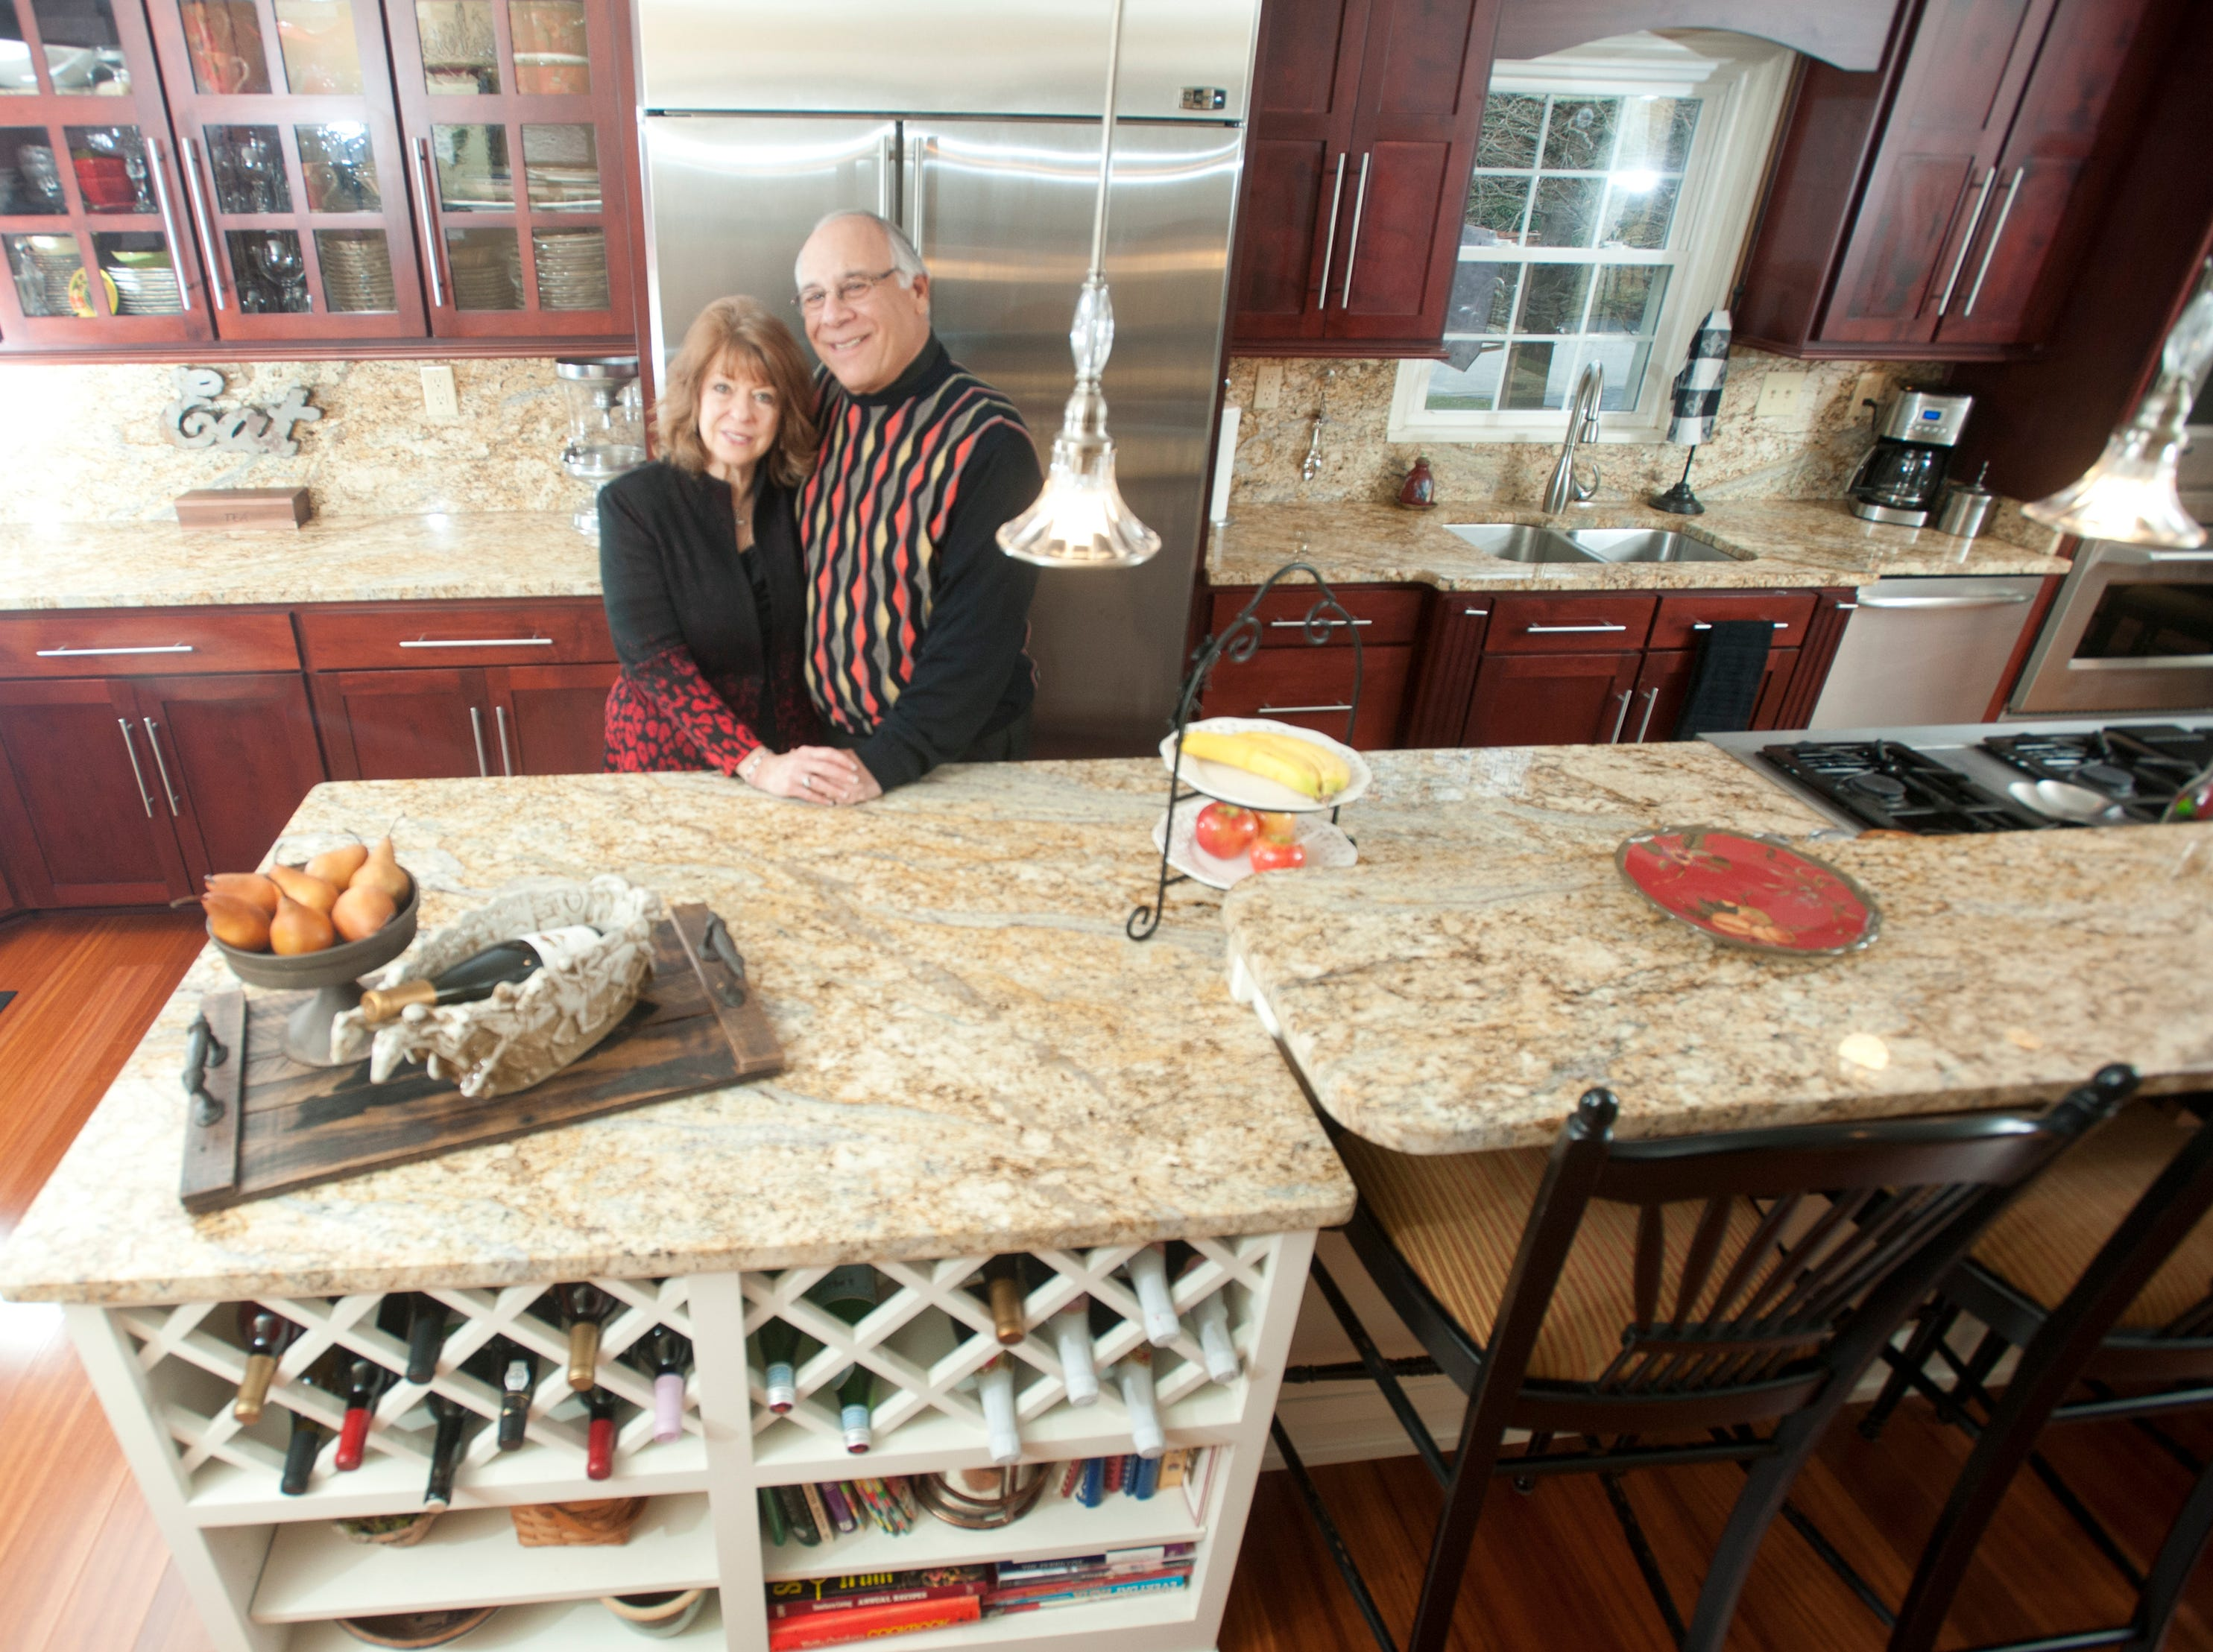 Carol and Mike Deeb in the kitchen of their recently renovated 1972 home in the Hurstbourne area of Louisville.